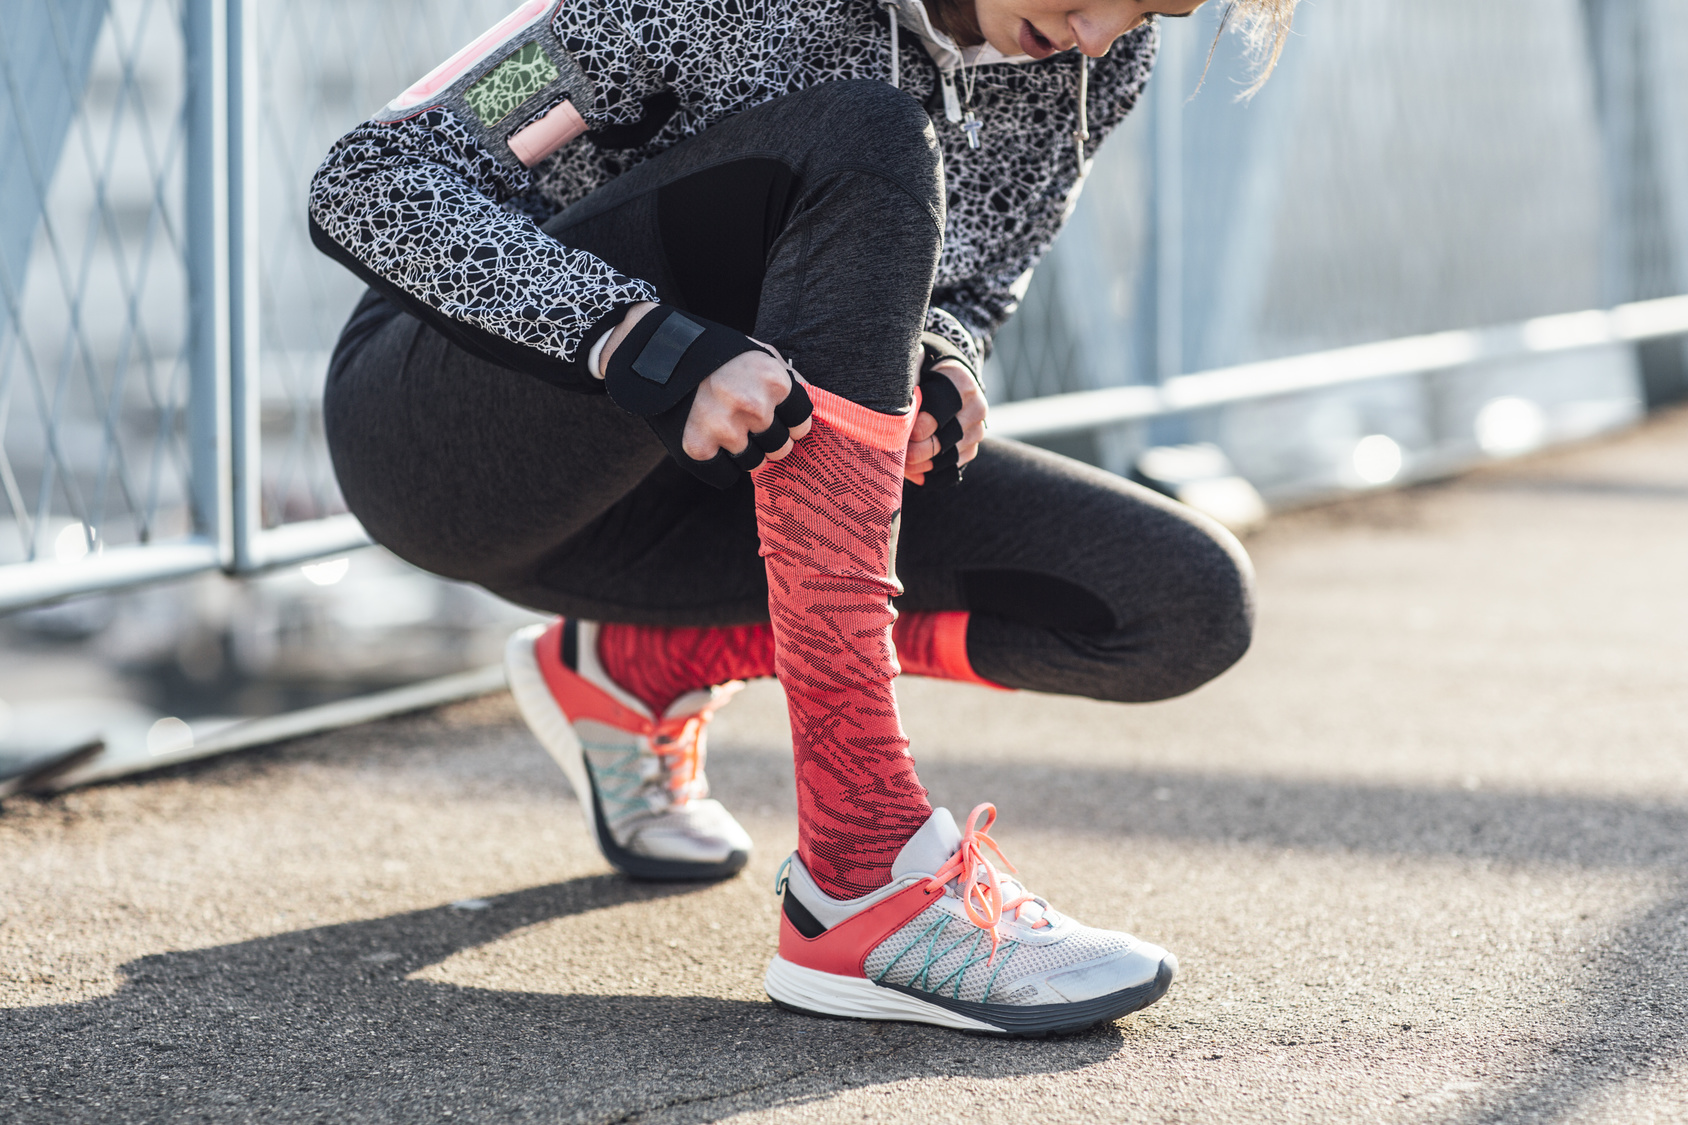 Best Socks for Athlete's Foot - Advices 2021